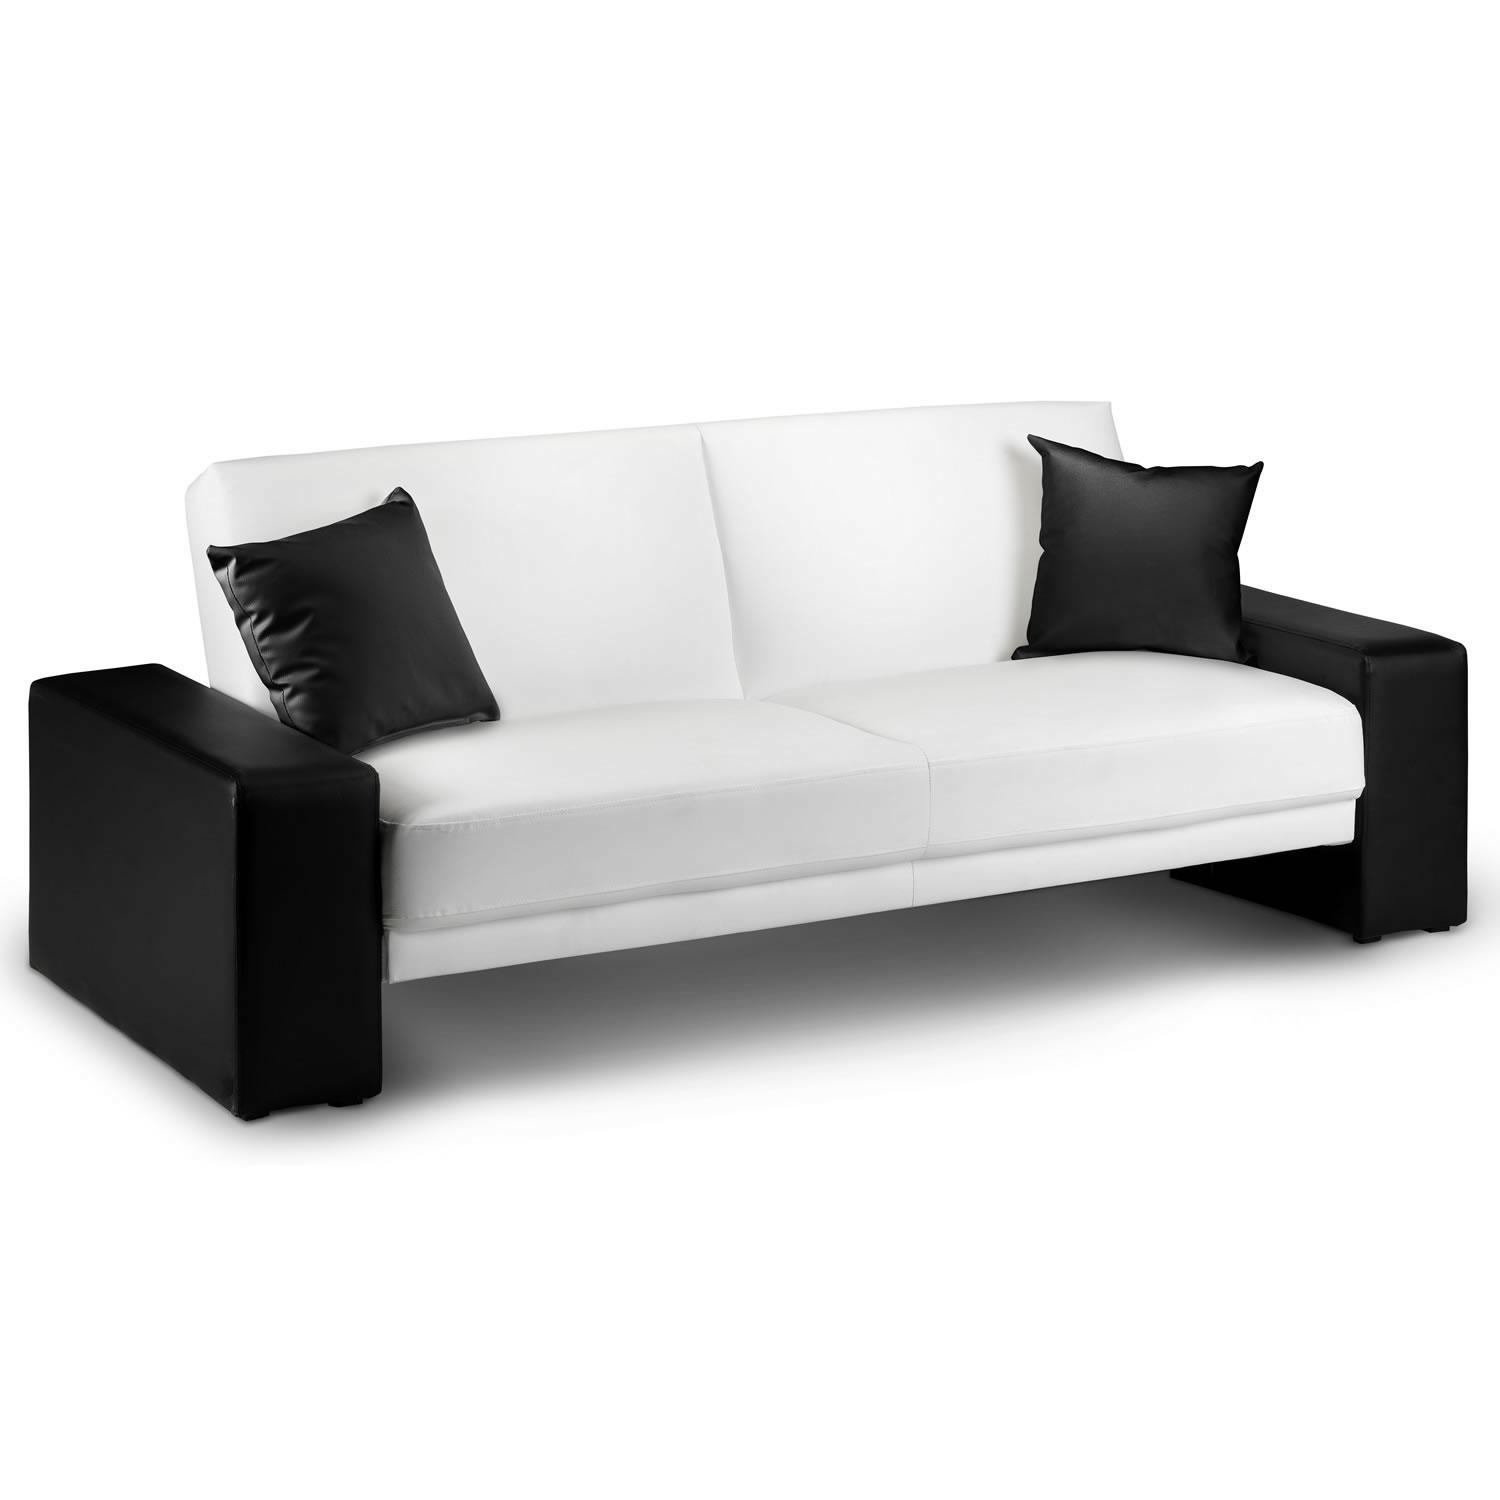 Sofas Center : Black And White Sofa Loveseat Slipcoversblack For Black And White Sofas And Loveseats (View 19 of 20)